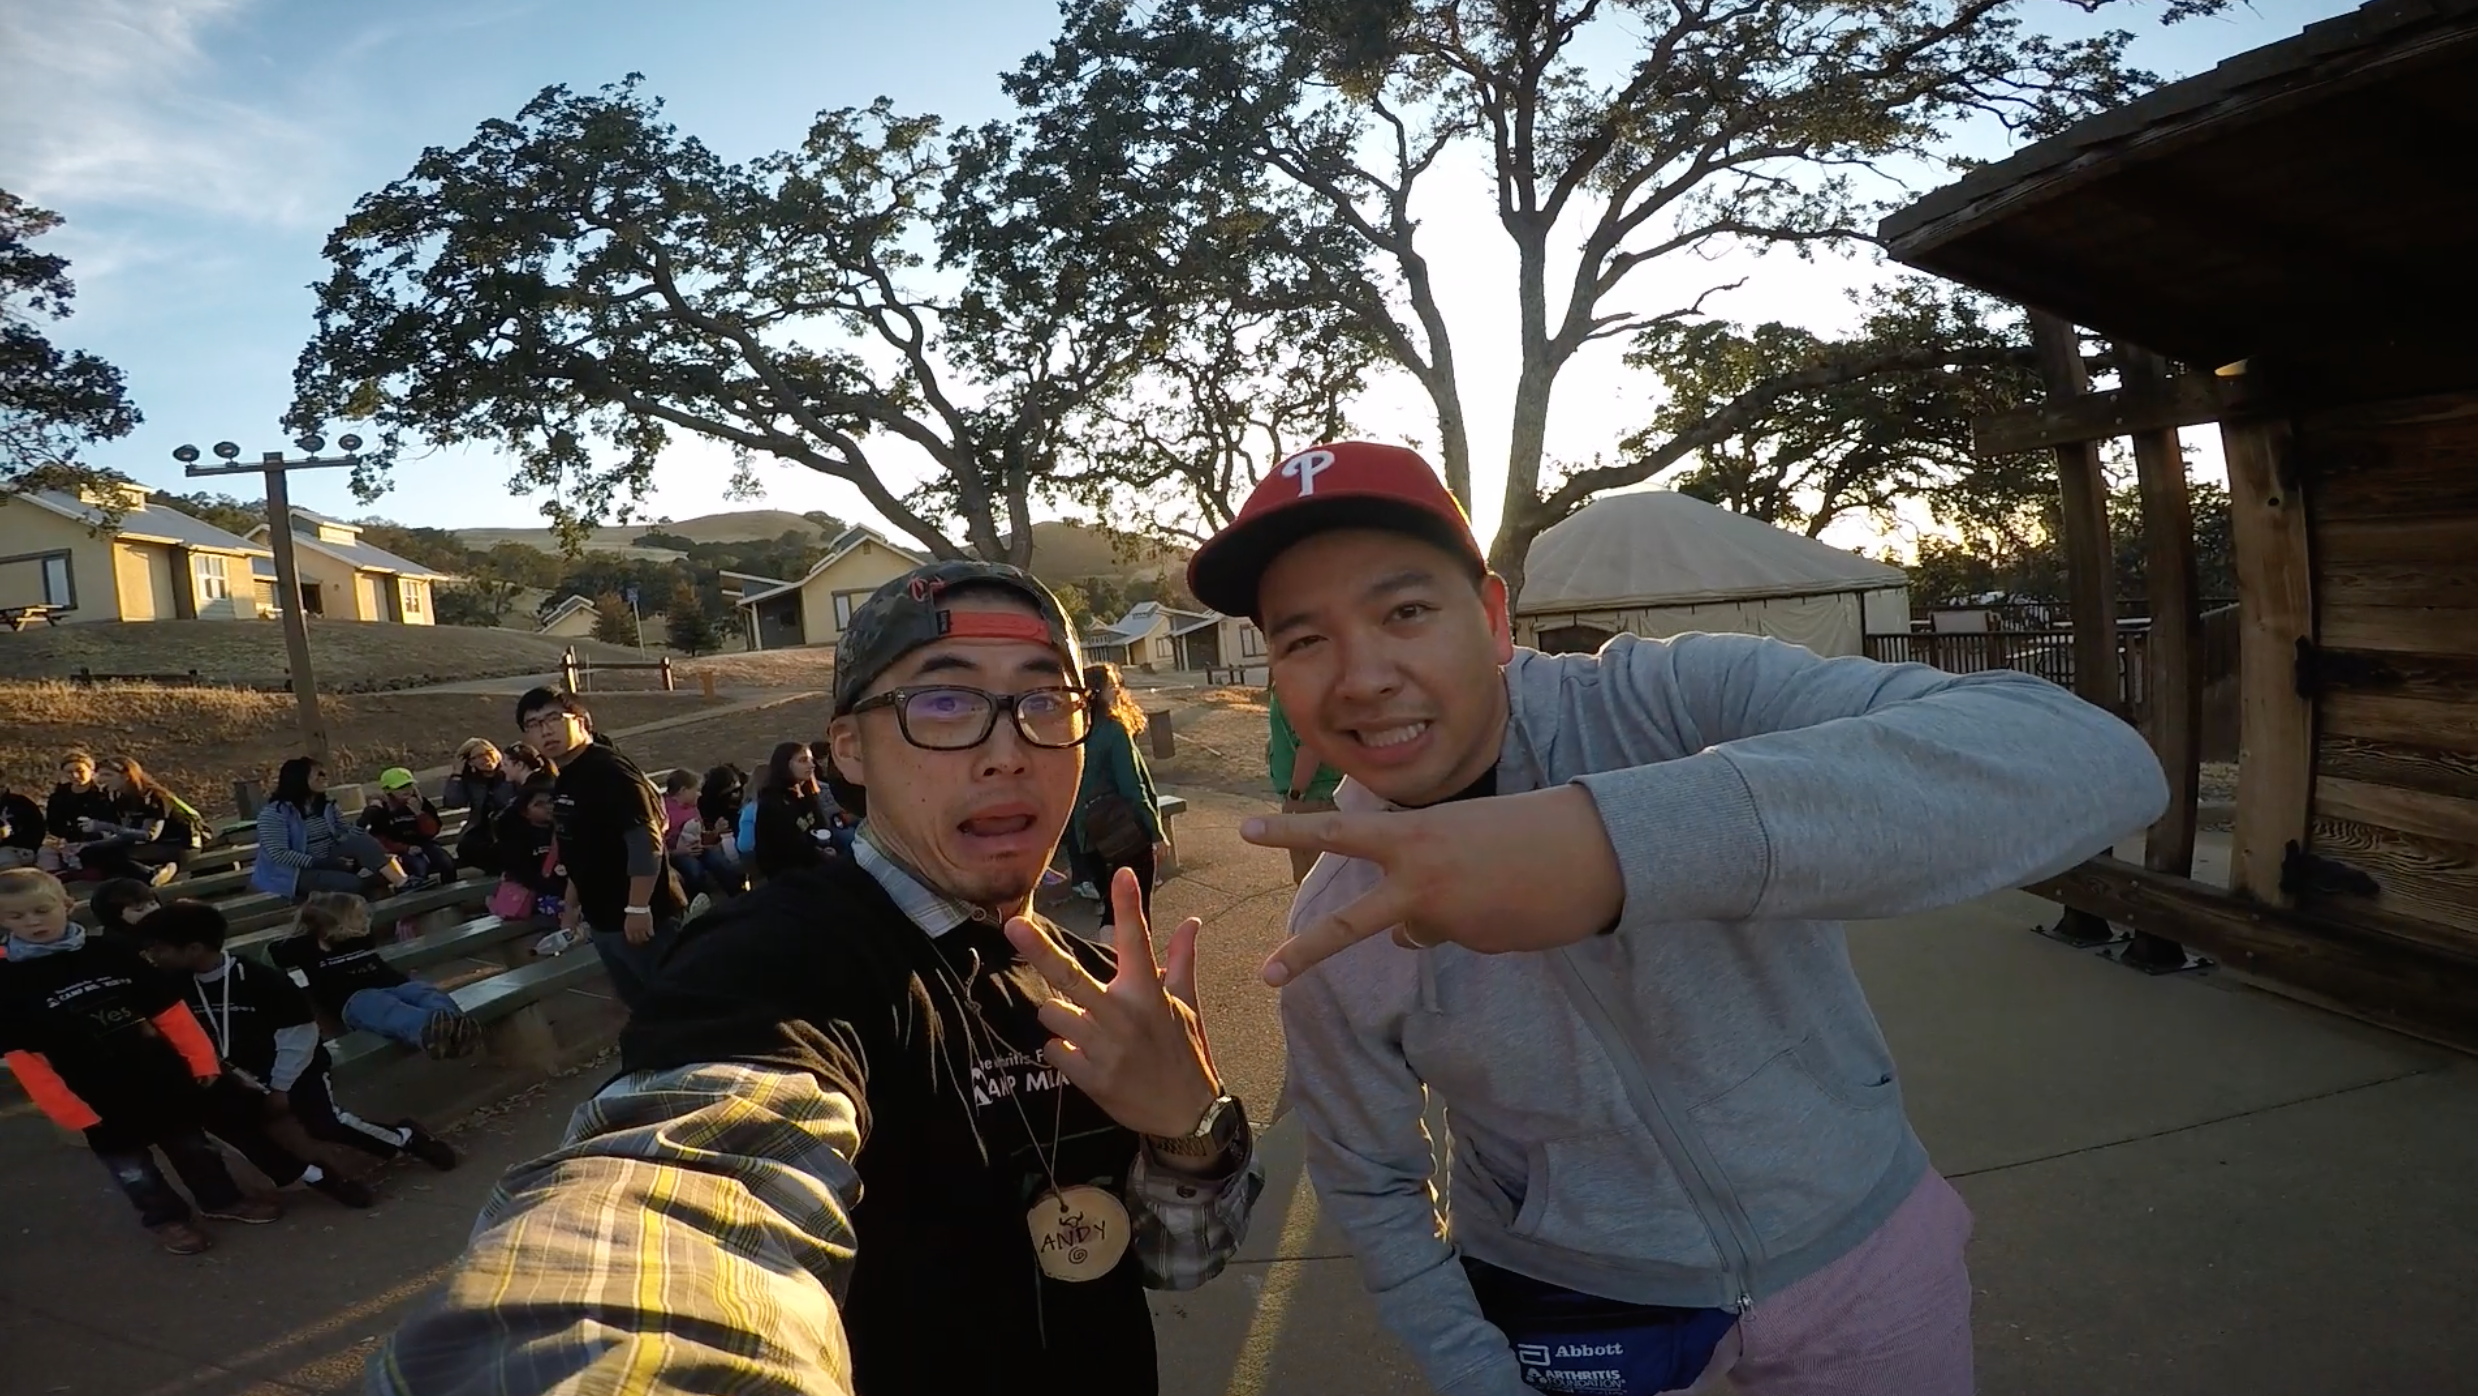 Camp Director, Quoc Du and I. We're actually childhood friends.